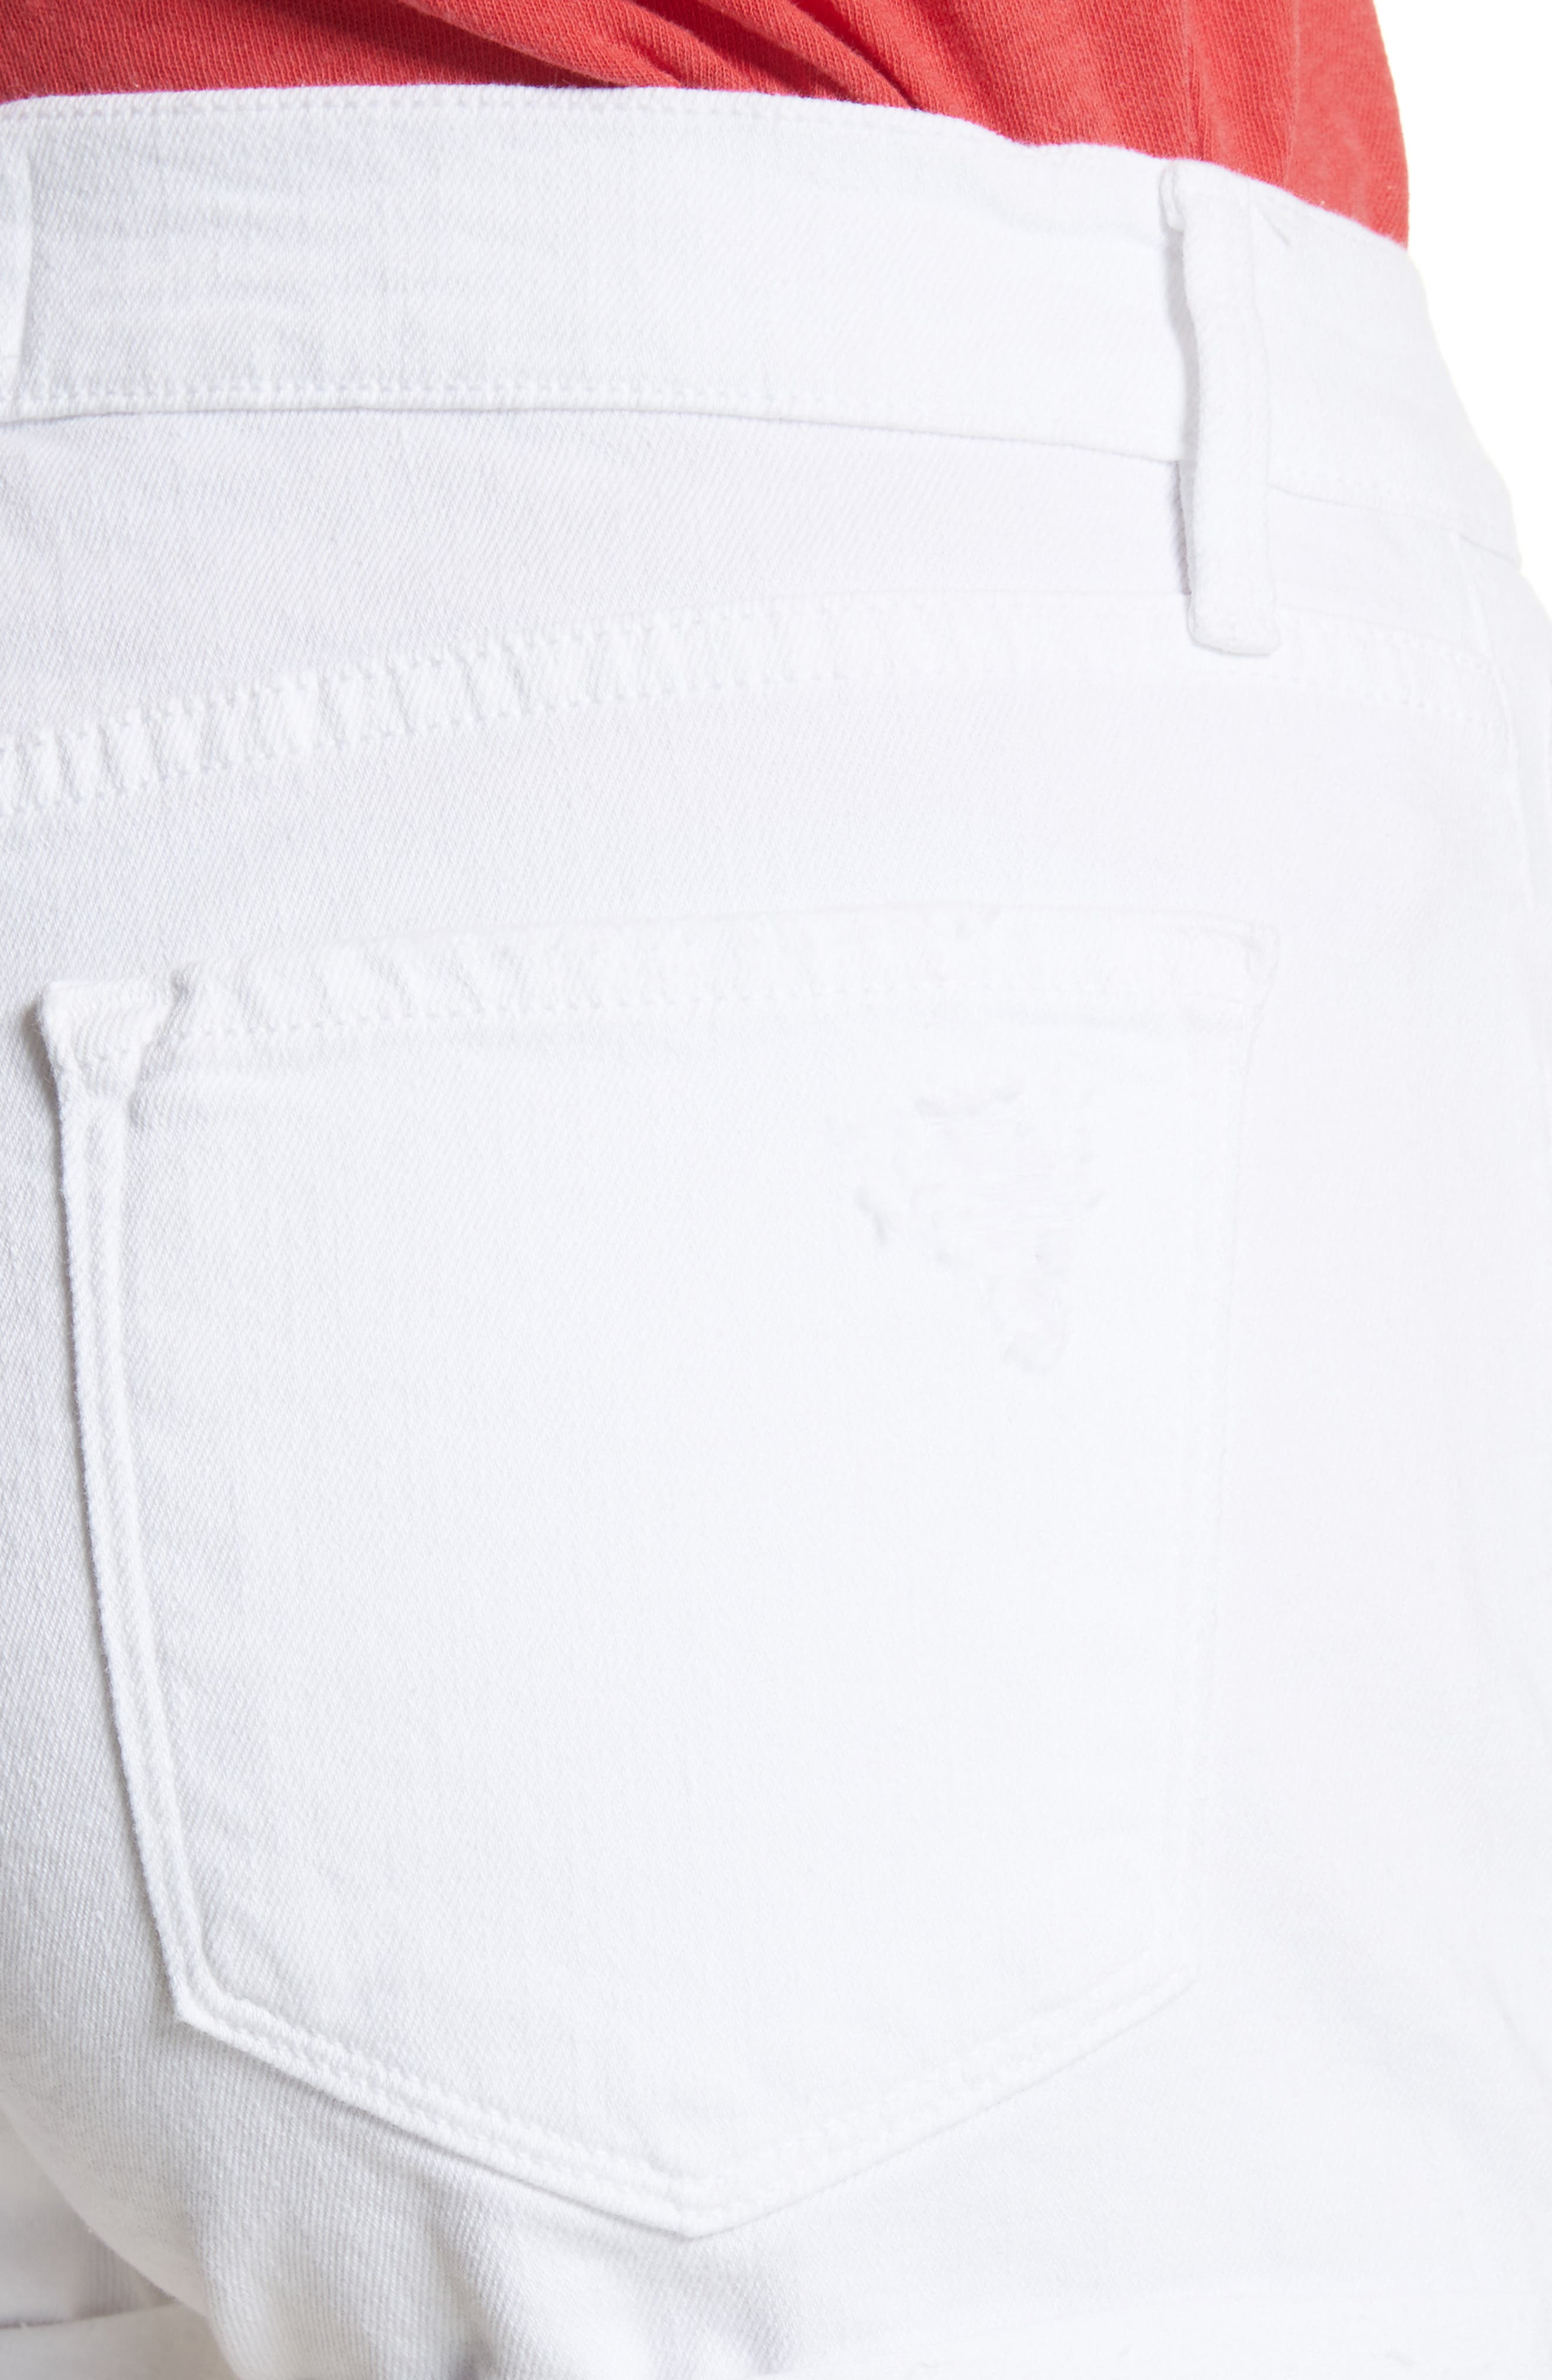 Le Cutoff Cuffed Jean Shorts,                             Alternate thumbnail 4, color,                             Blanc Rookley